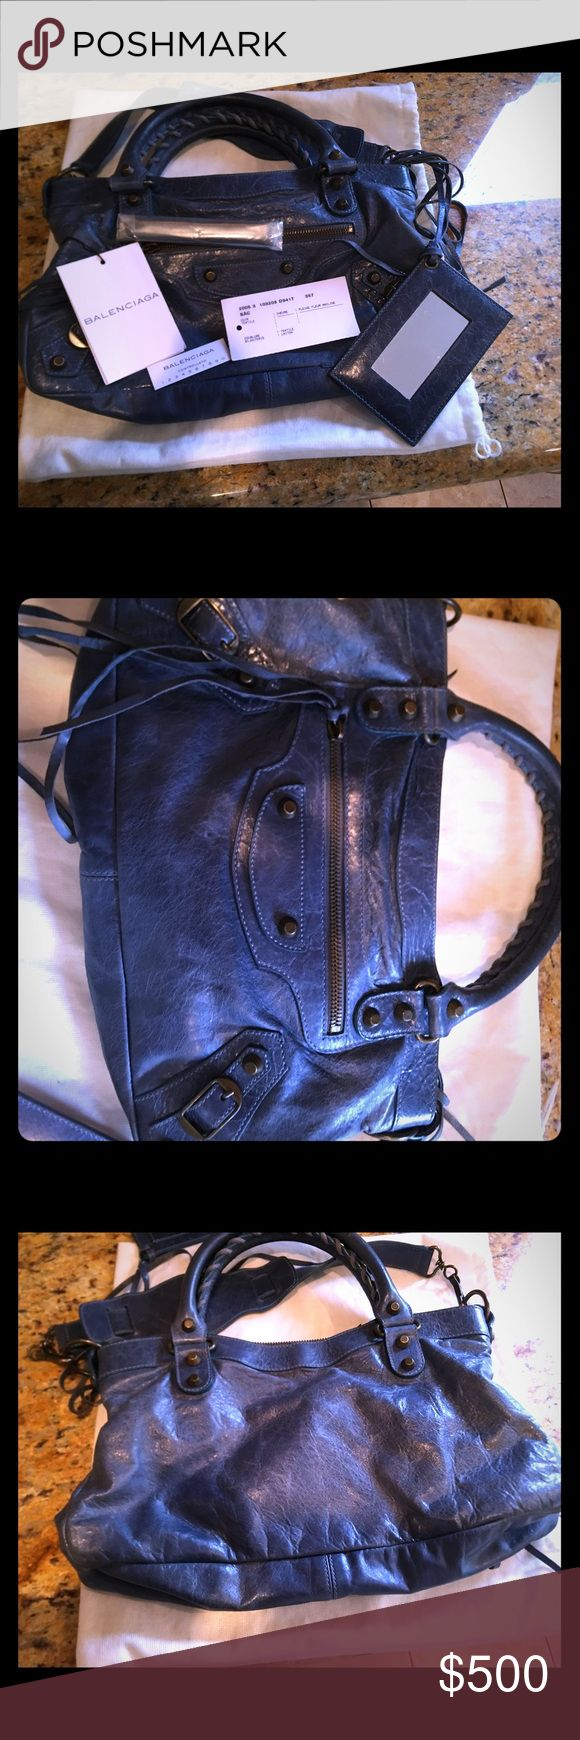 Balenciaga First City Classic Near perfect condition beautiful blue leather 100% authentic Balenciaga Classic City bag. Comes with dust bag and original tags, mirror, extra tassels. Slight fading of leather in bottom corners Balenciaga Bags Satchels